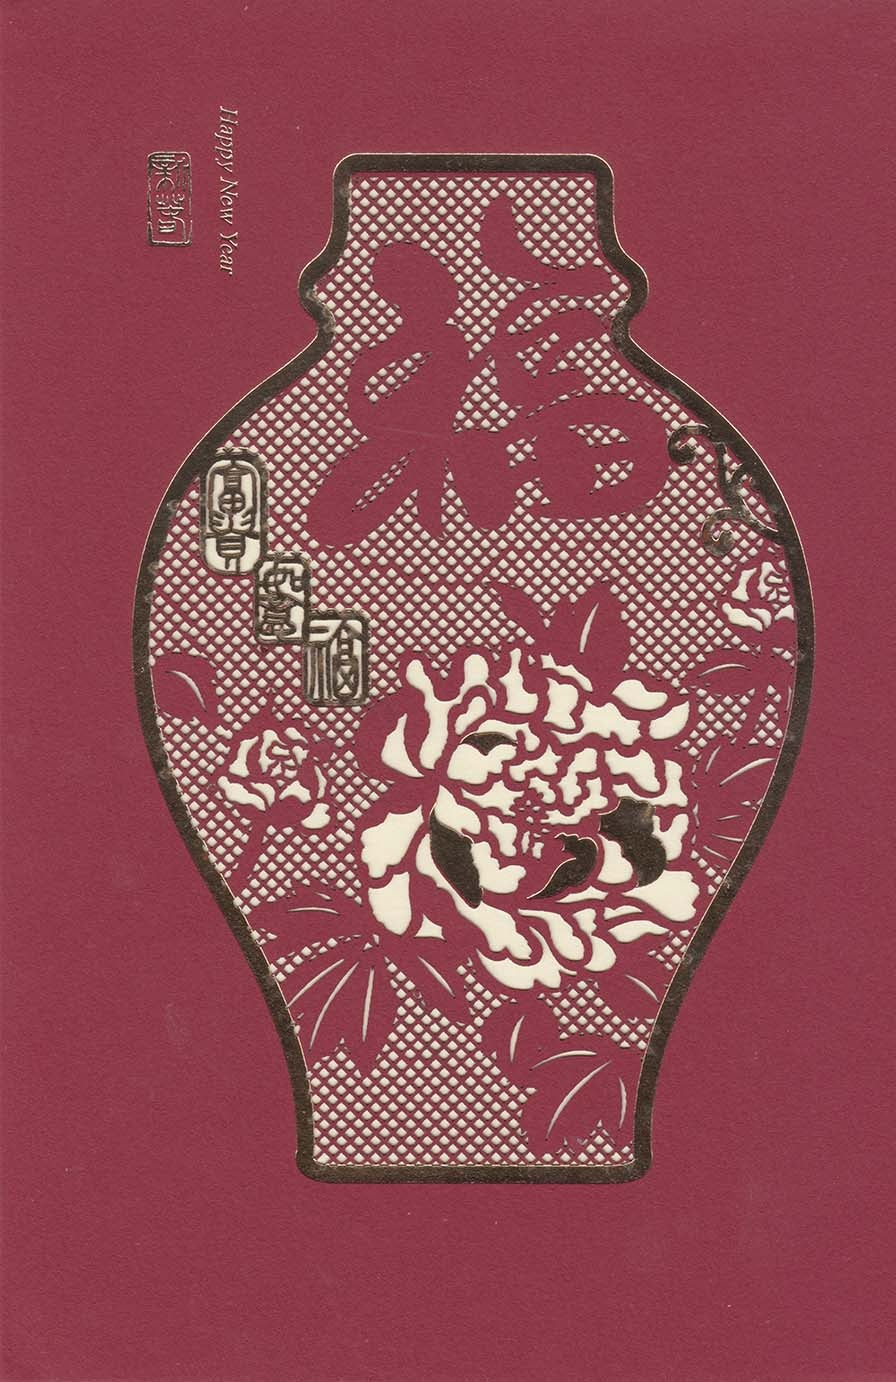 Image of Floral Vase Chinese New Year card - Vase Design 新年贺卡